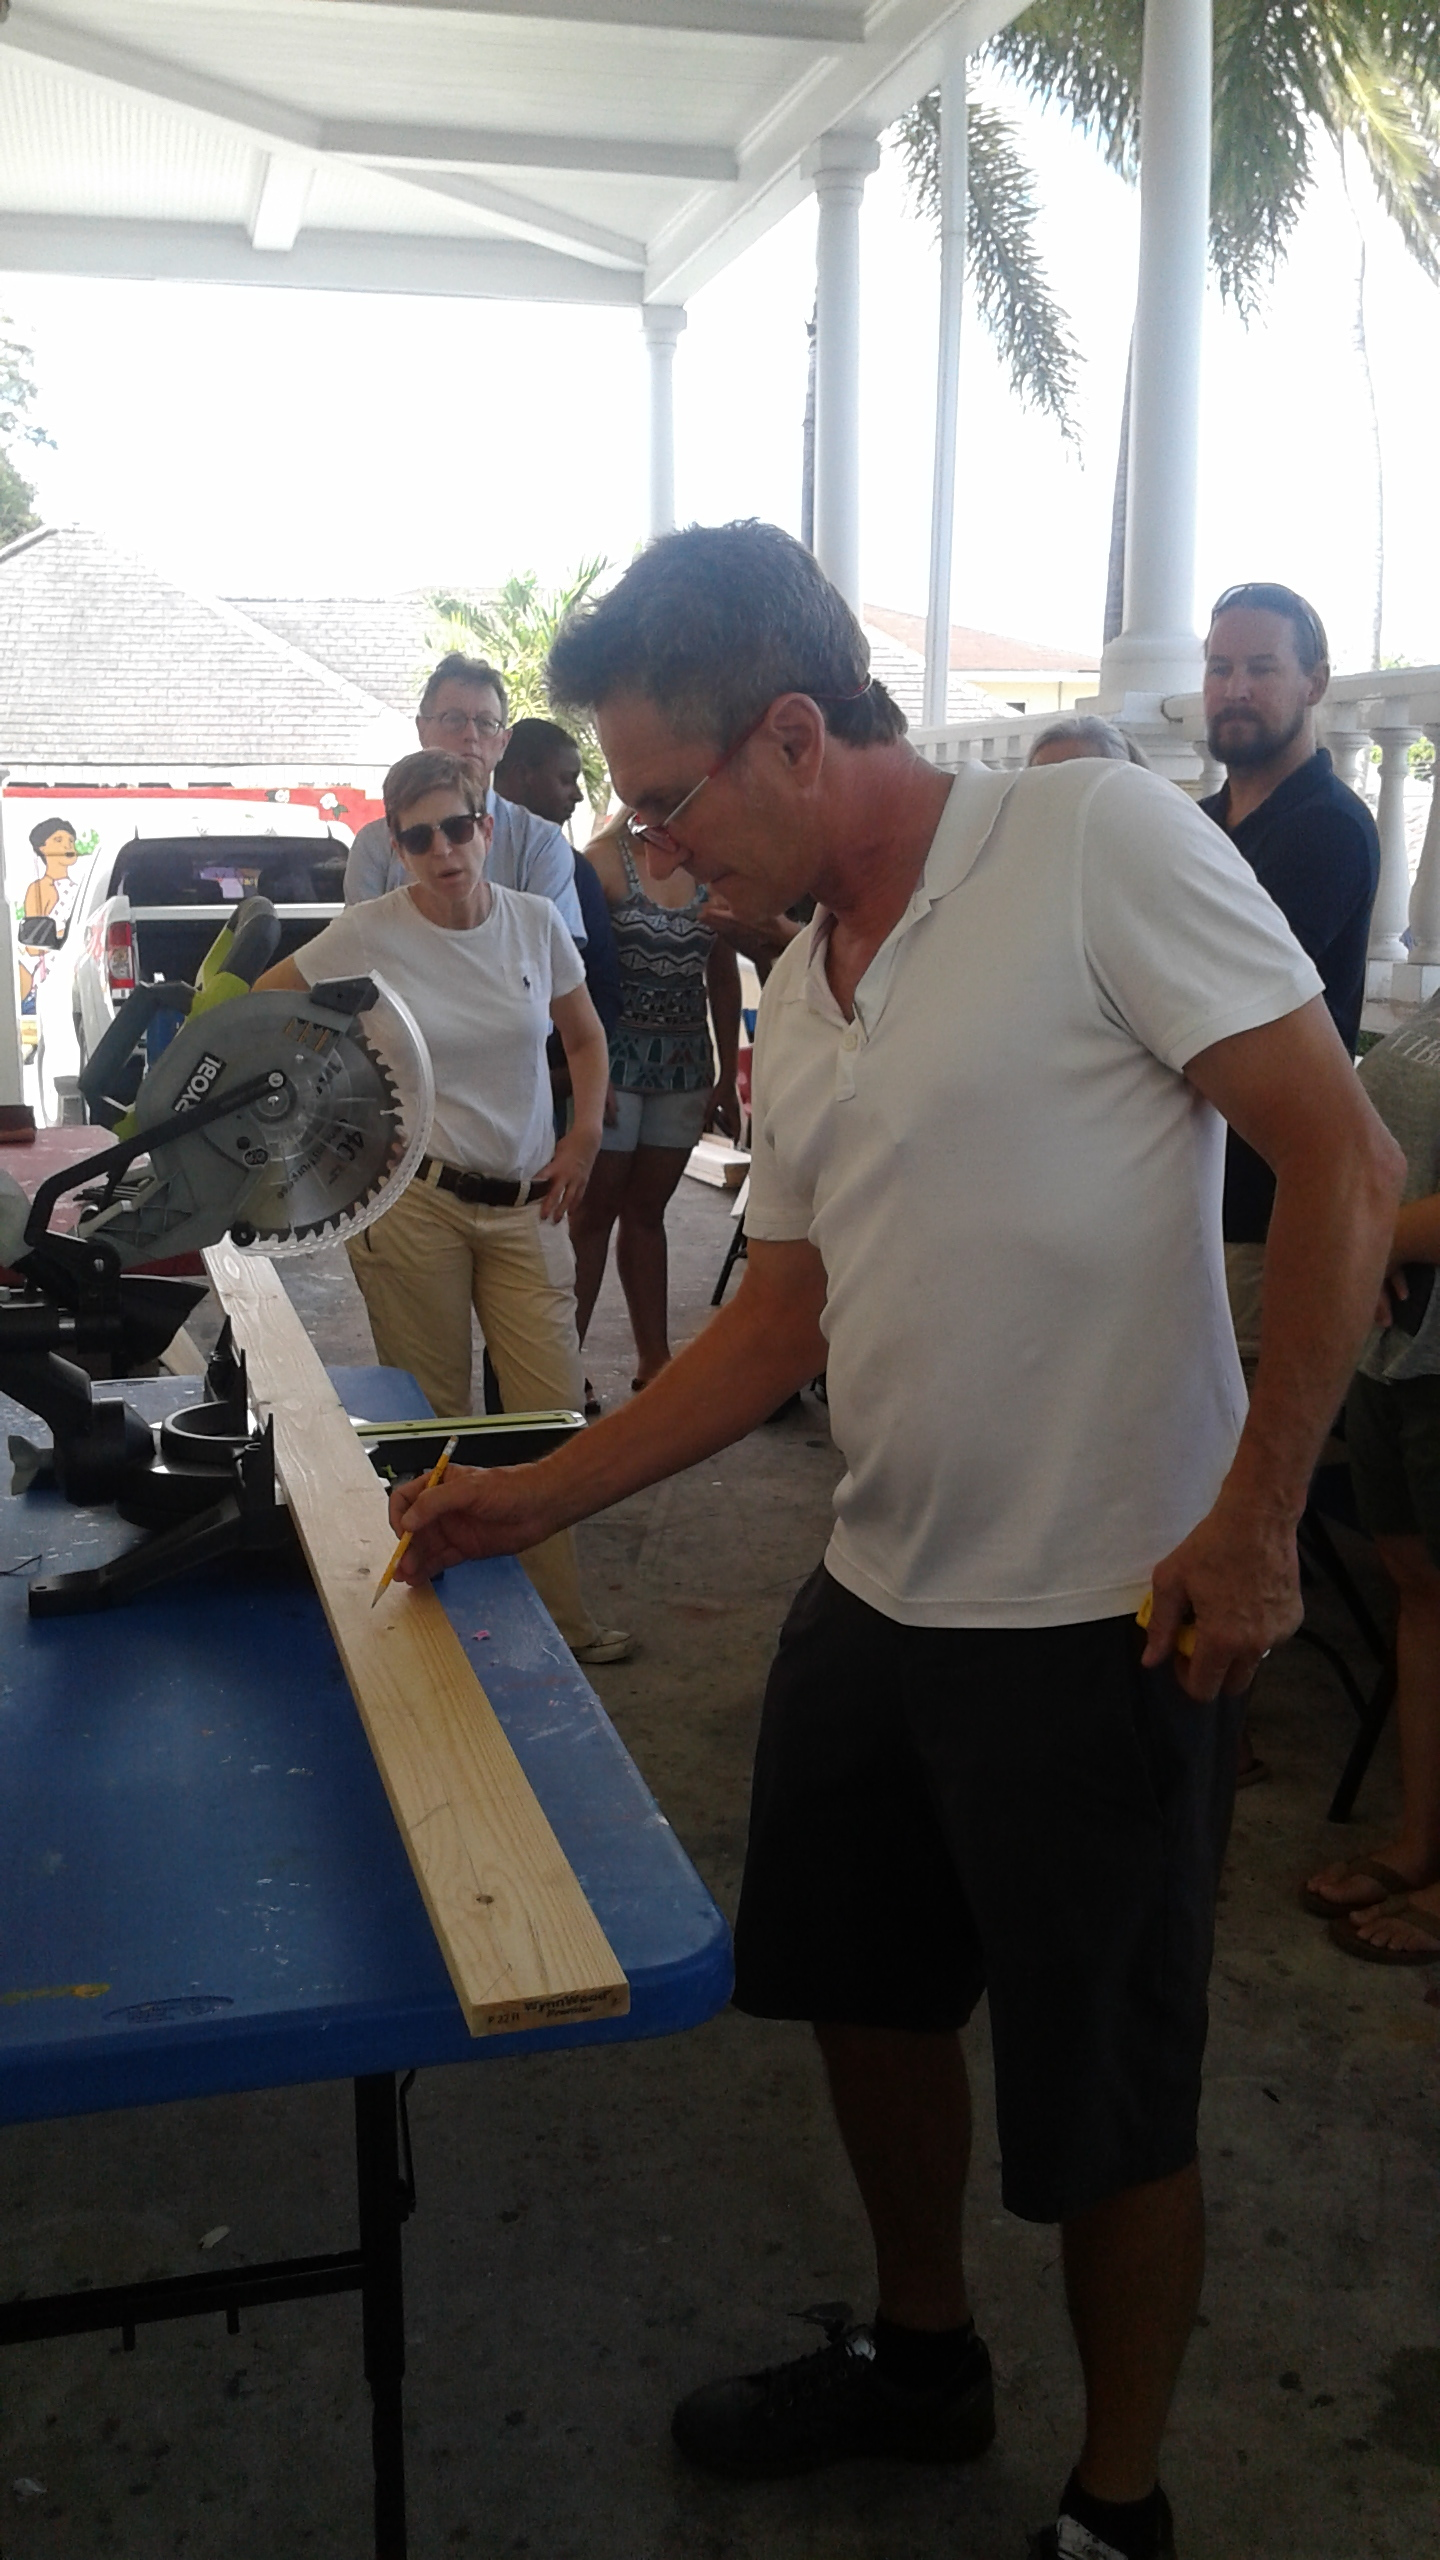 Thierry Lamare demonstrates the first step -measure and cut! Images courtesy of the NAGB.